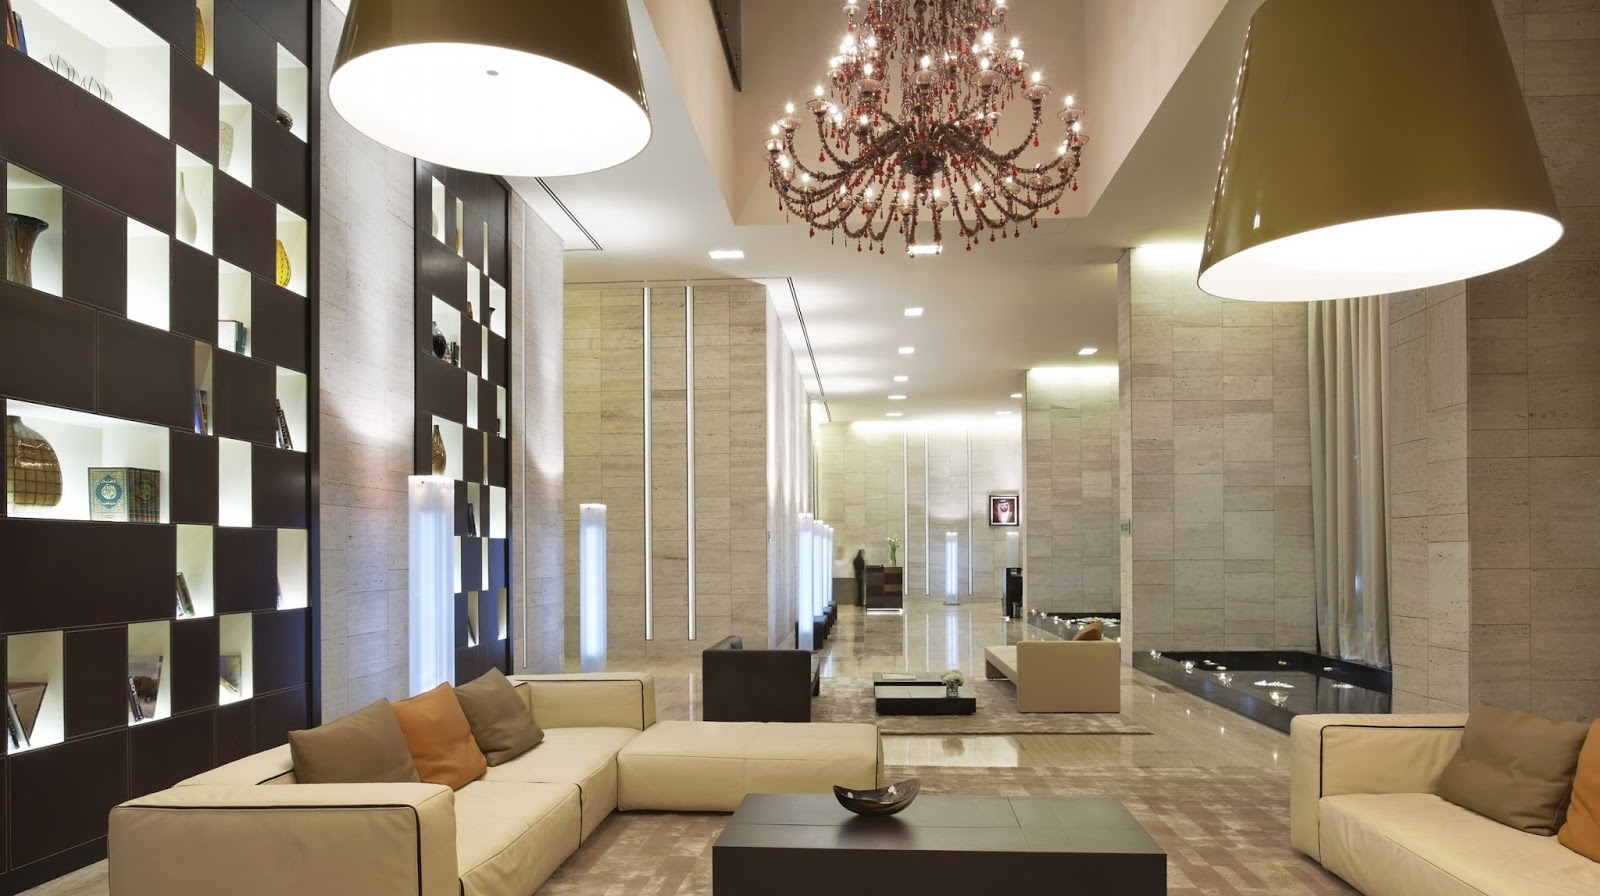 List of interior design firms in dubai for Top interior design firms